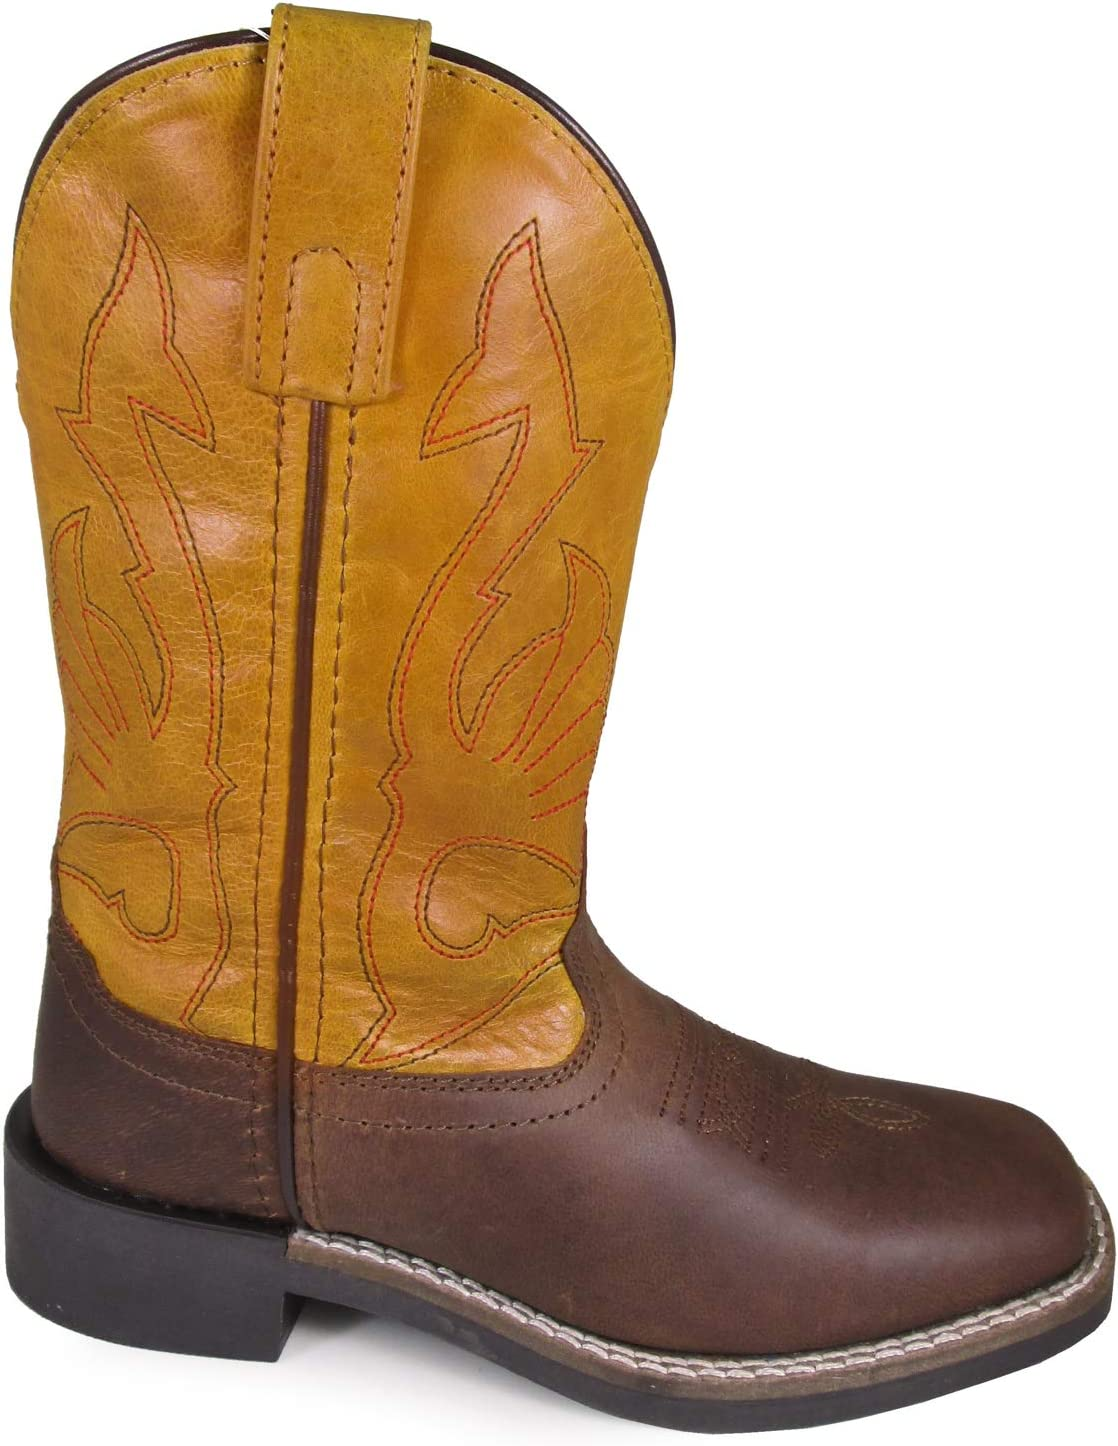 Smoky Mountain Youth Sale Unisex Free Shipping Cheap Bargain Gift Crockett Mustard Leather Brown Cowbo